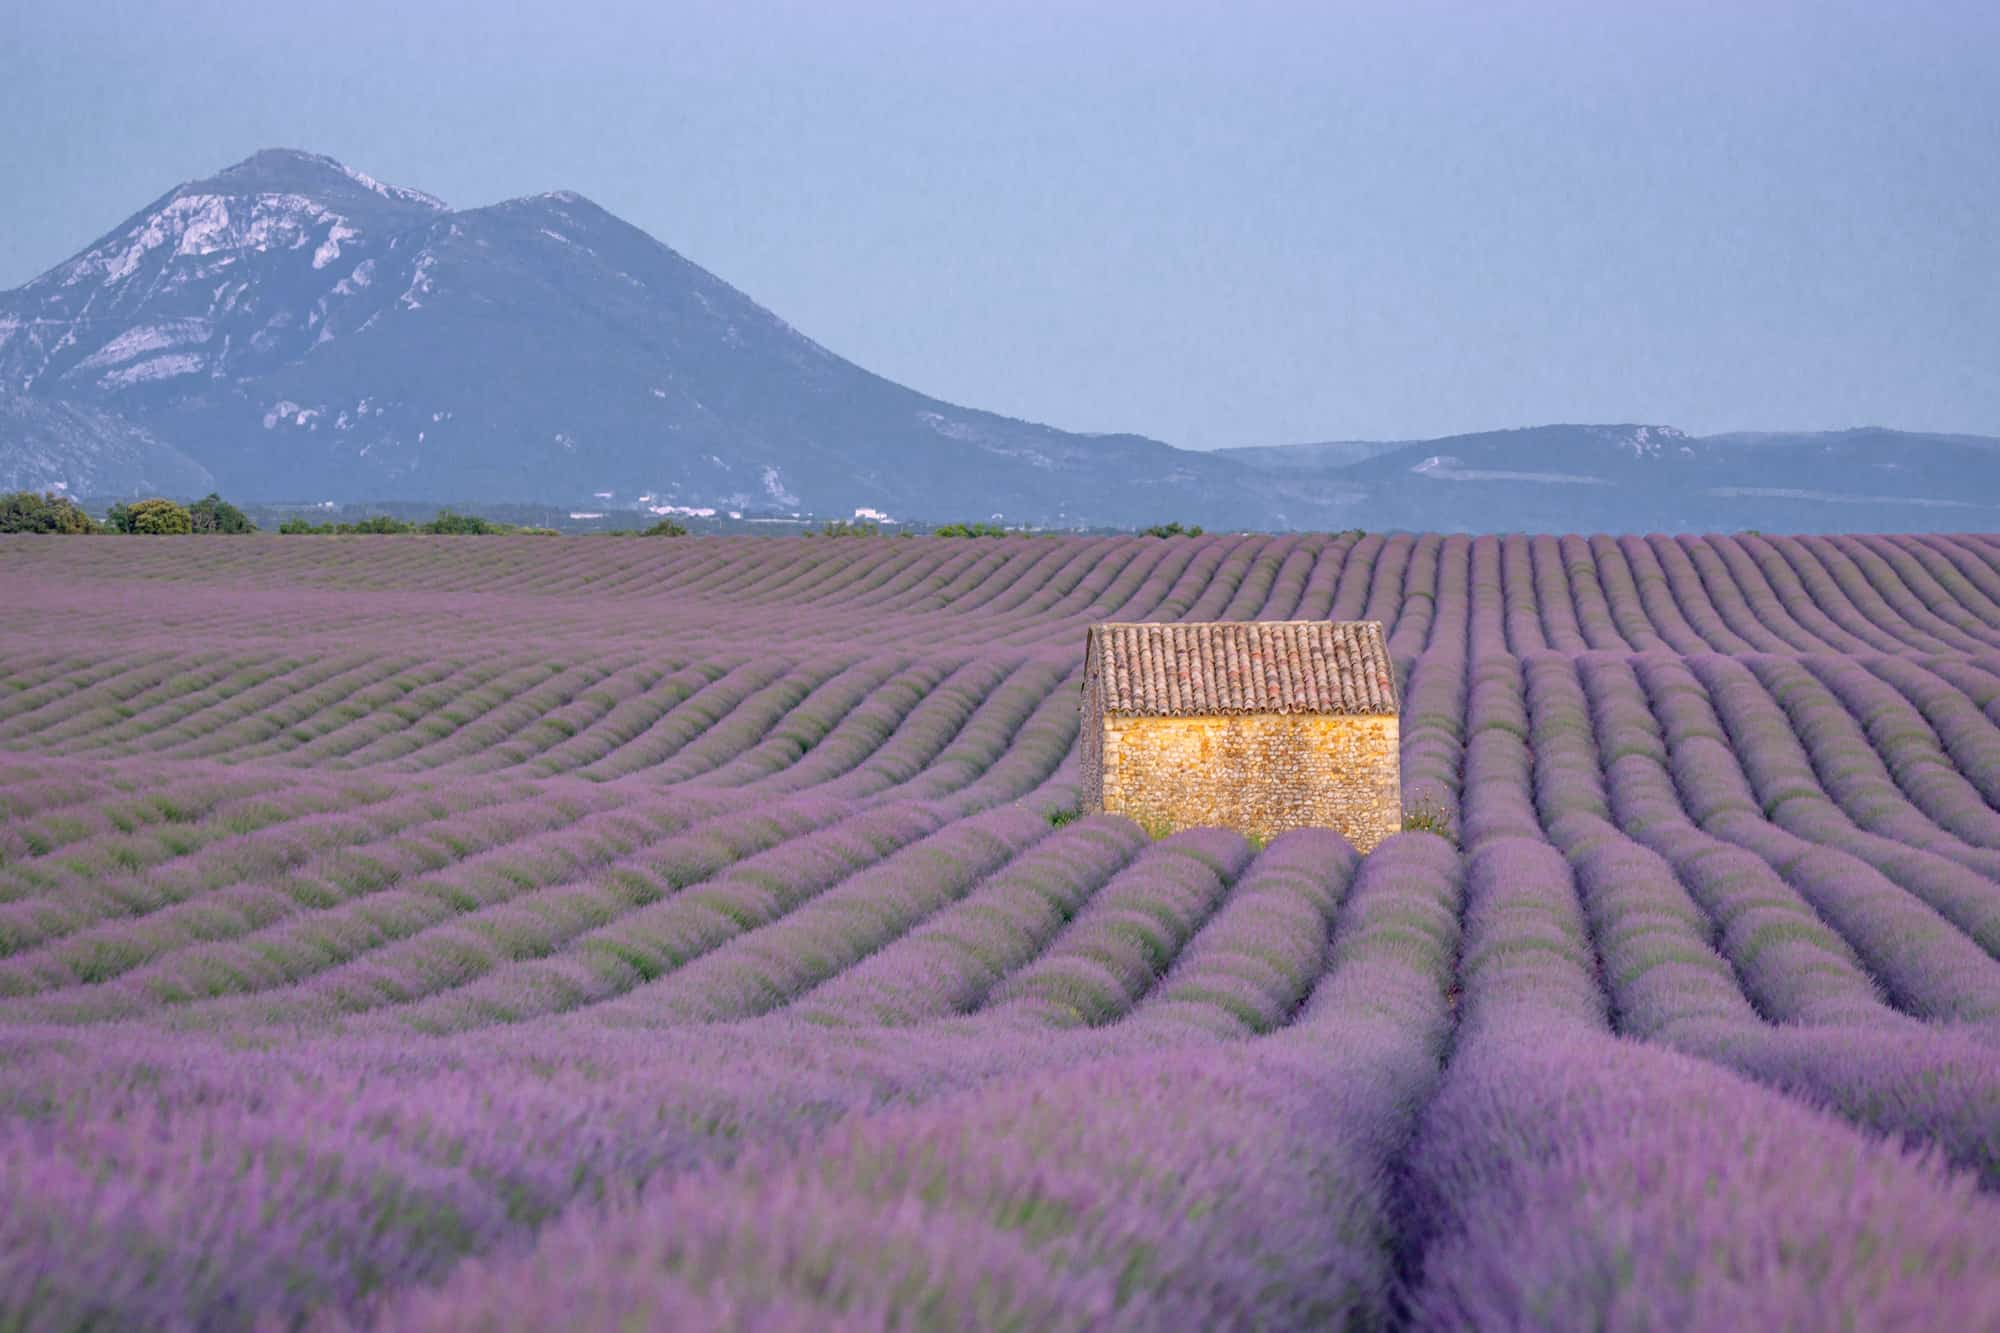 Lavender fields on the Plateau de Valensole in Provence, France